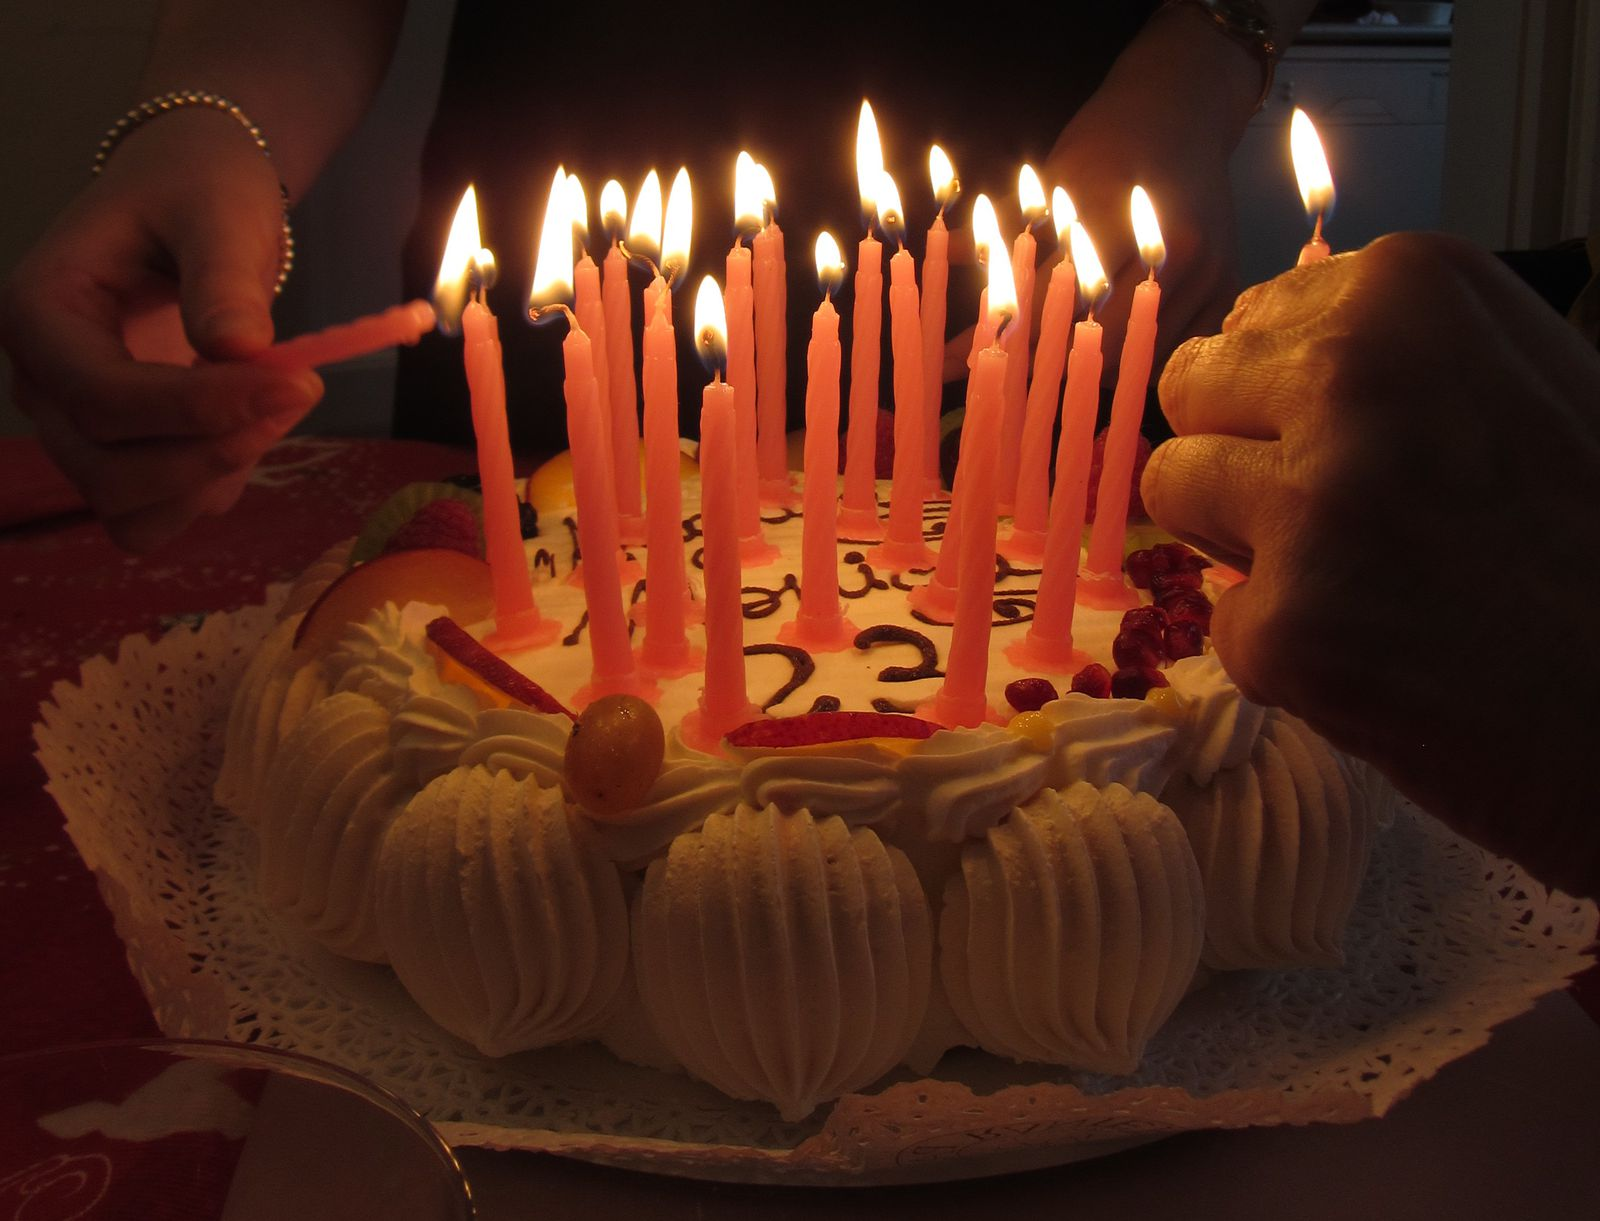 Blowing Out Birthday Candles Makes The Cake Taste Better Smart News Smithsonian Magazine